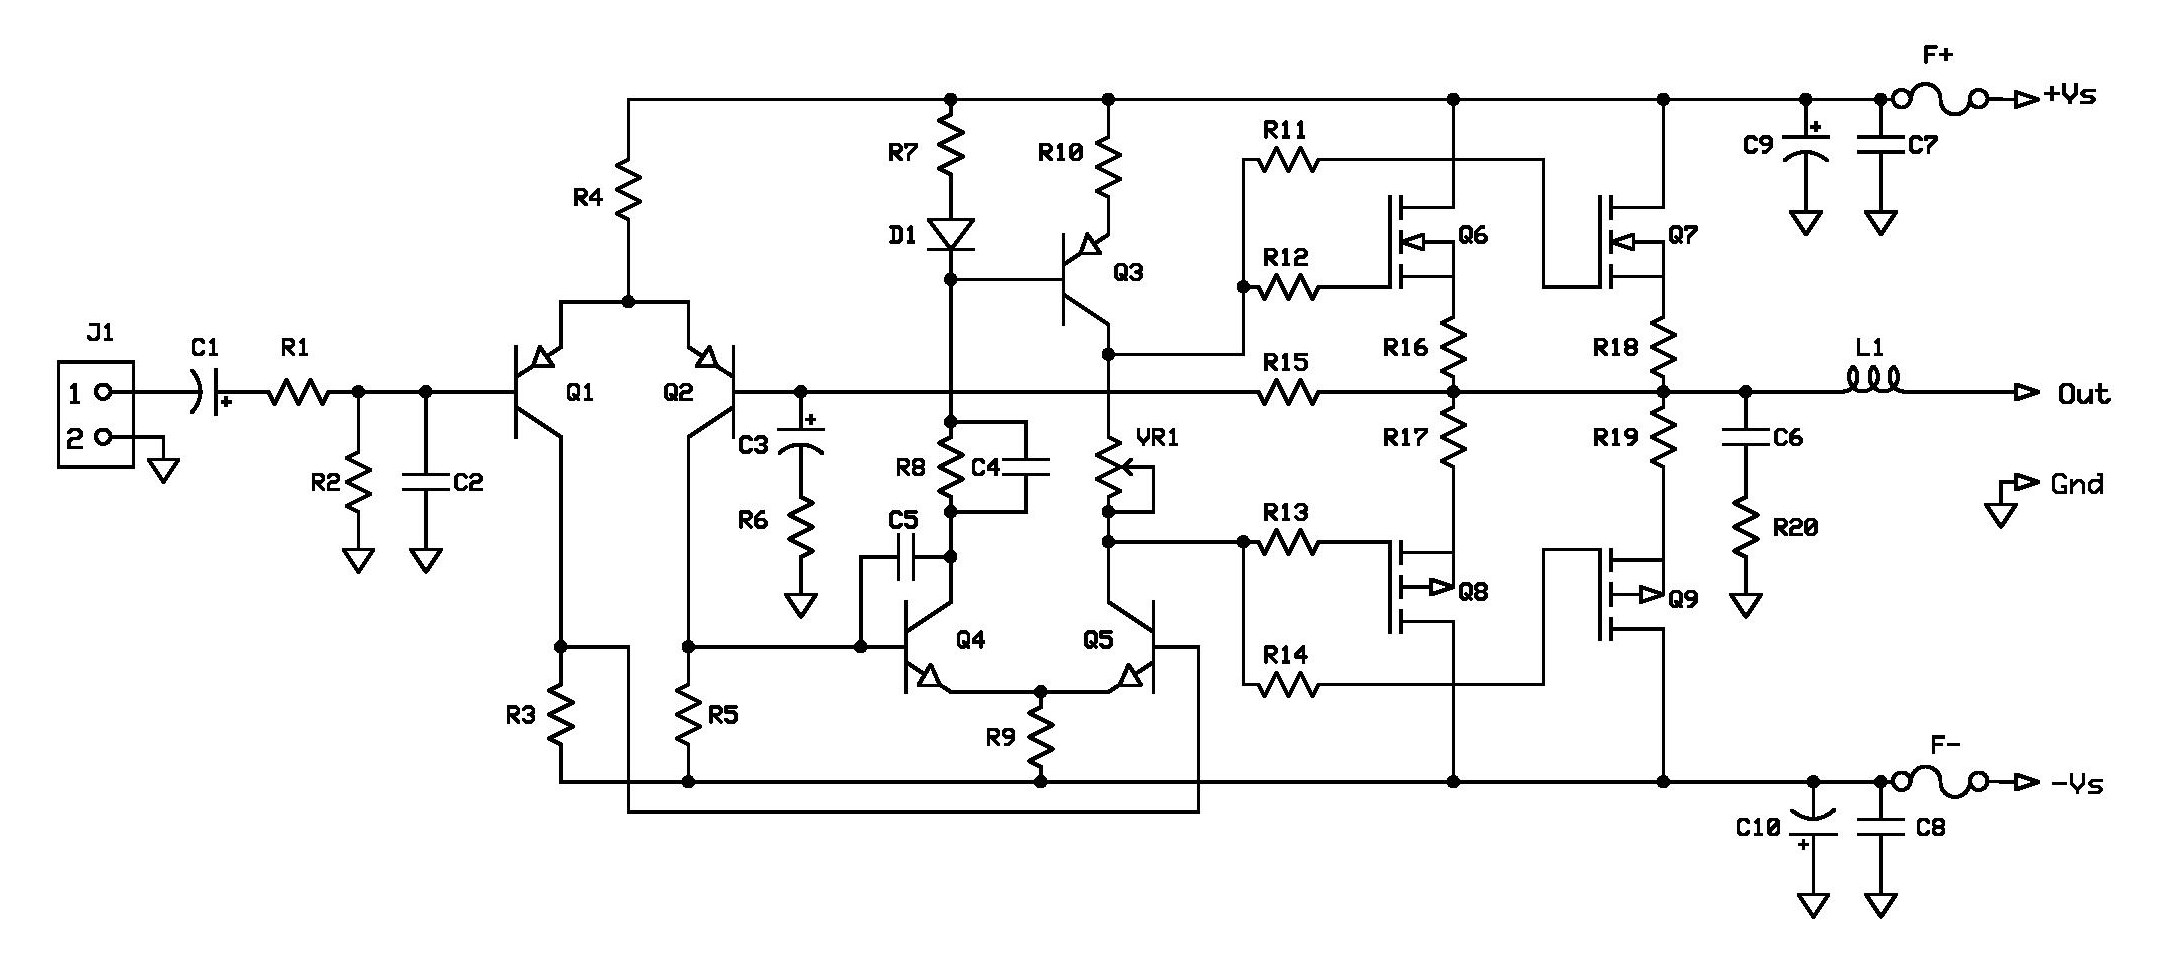 100w Inverter Circuit Diagram With Pcb Layout